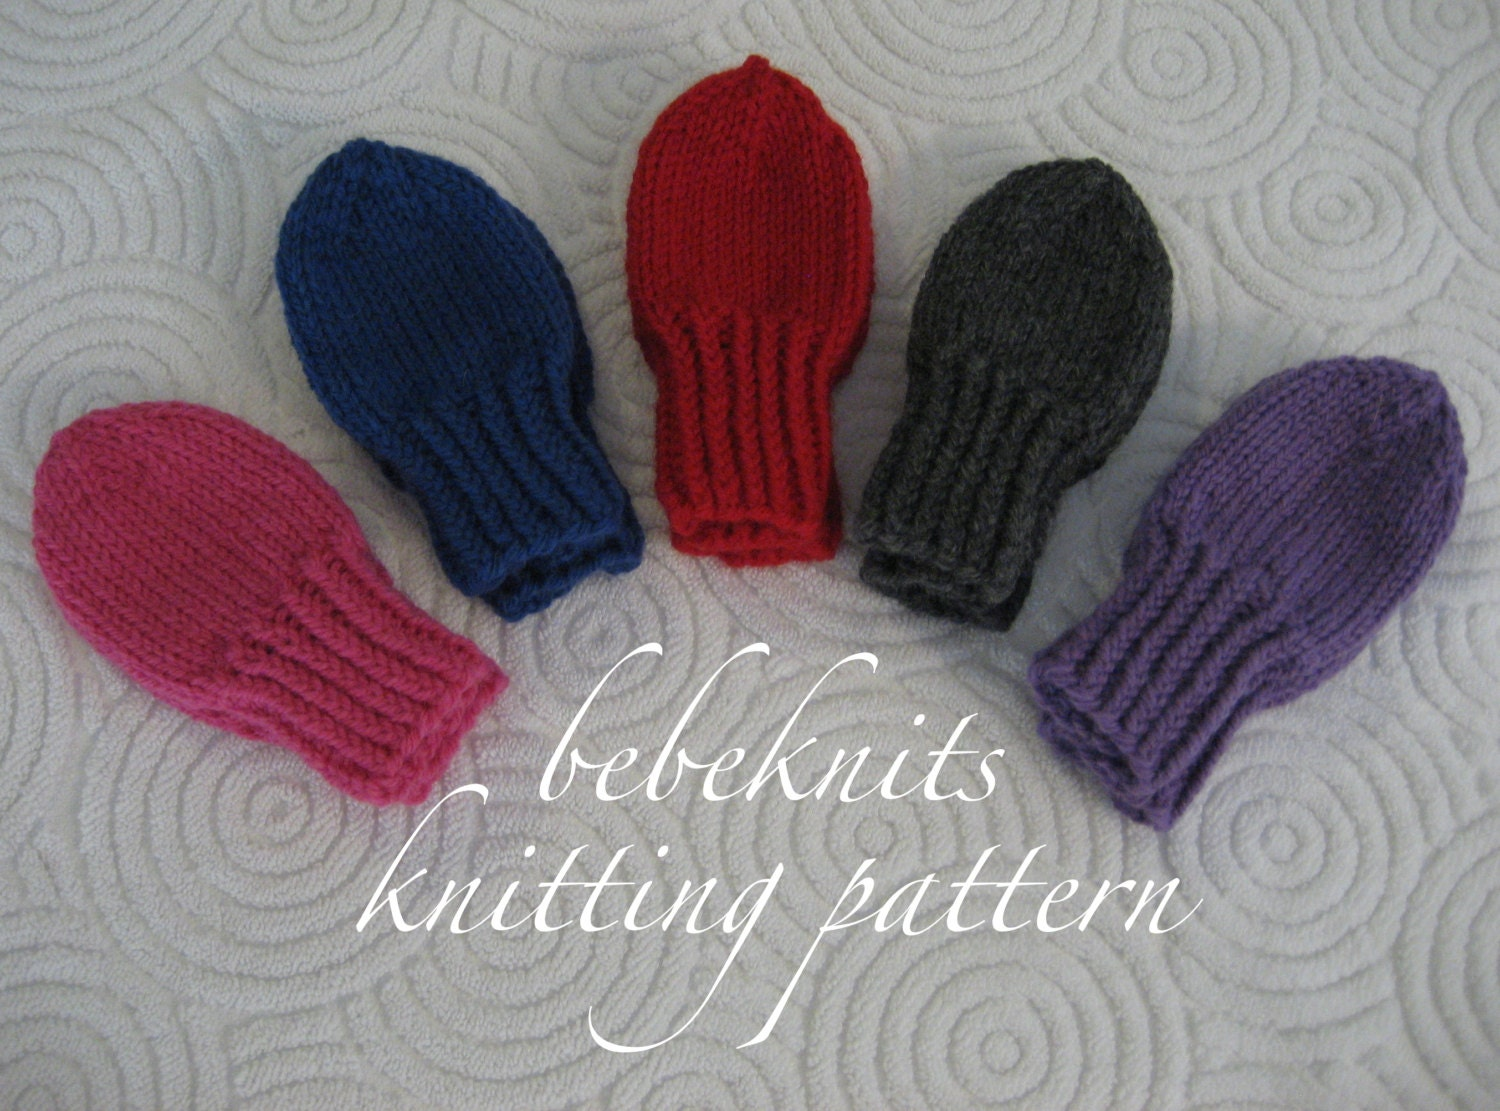 Free Crochet Pattern For Thumbless Mittens : Bebeknits Thumbless Toddler Mittens Knitting Pattern